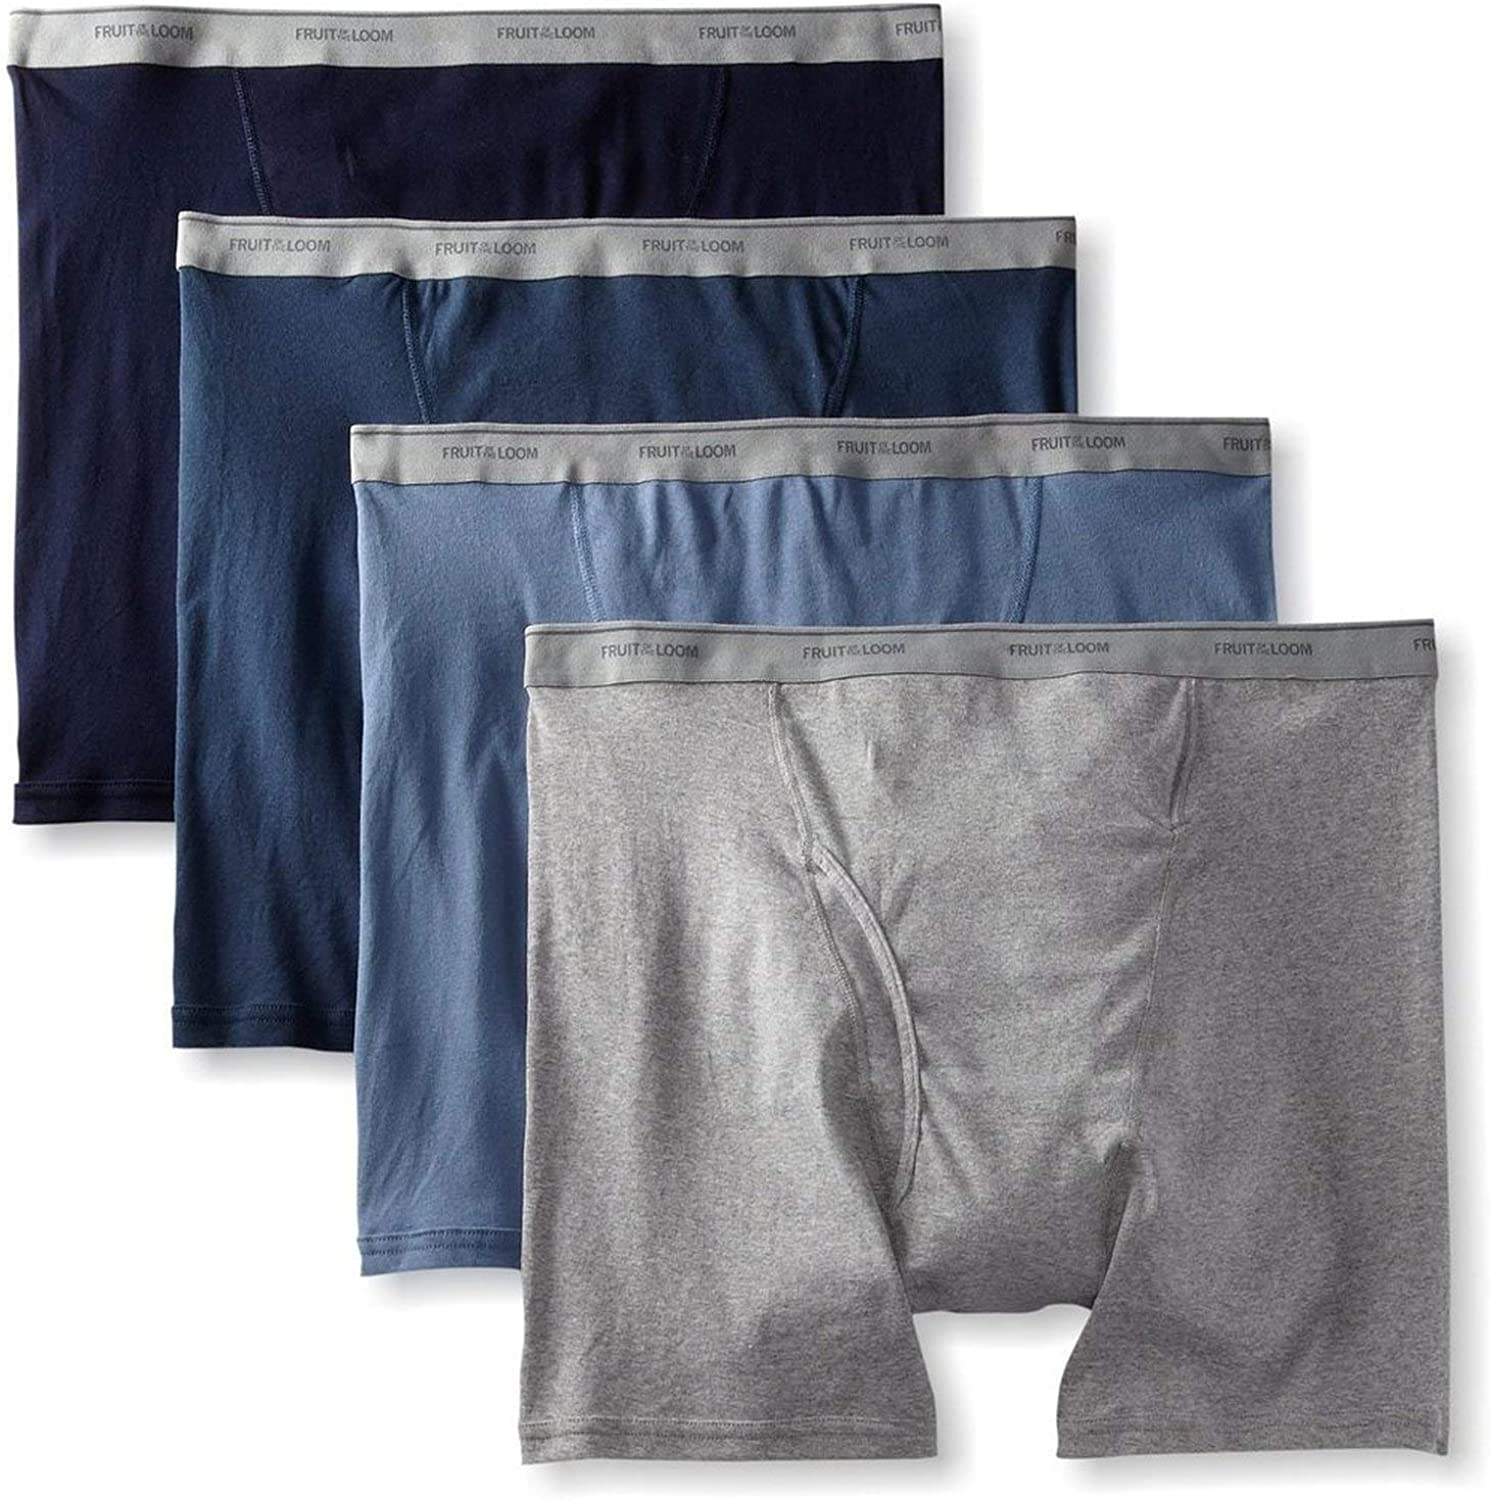 Fruit of the Loom Men's Boxer Briefs 100% Cotton Underwear